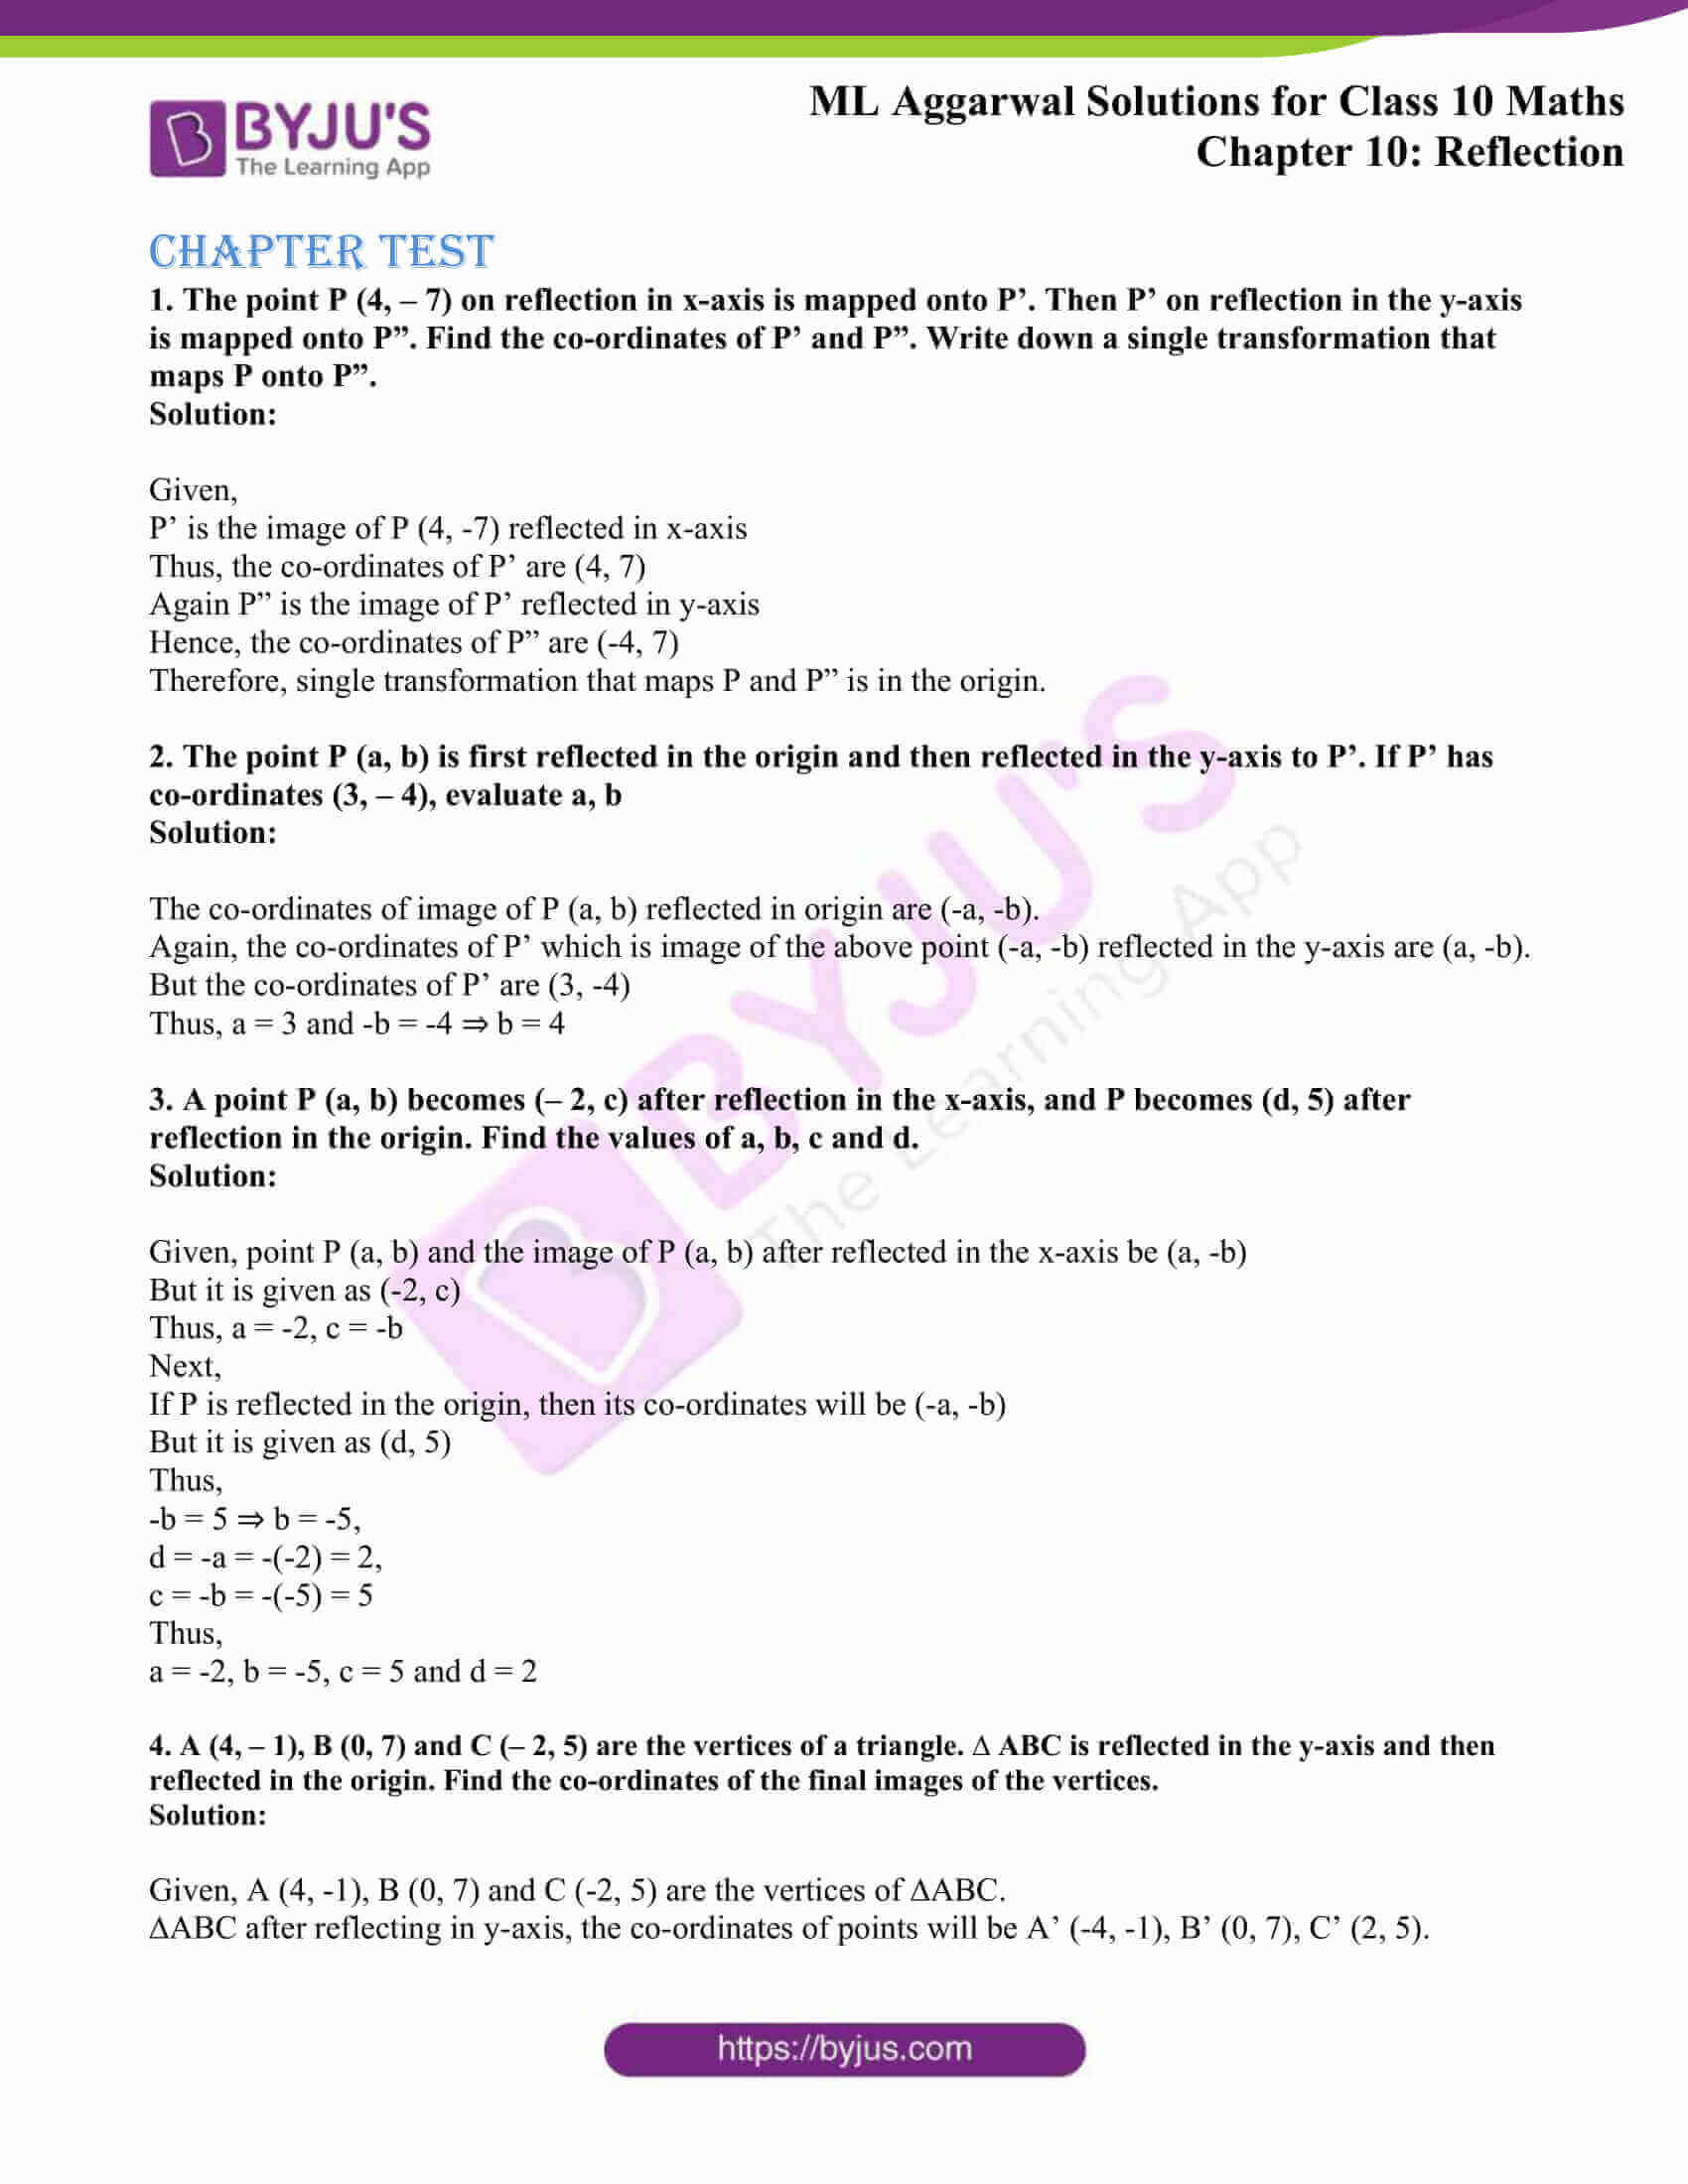 ml aggarwal solutions class 10 maths chapter 10 23